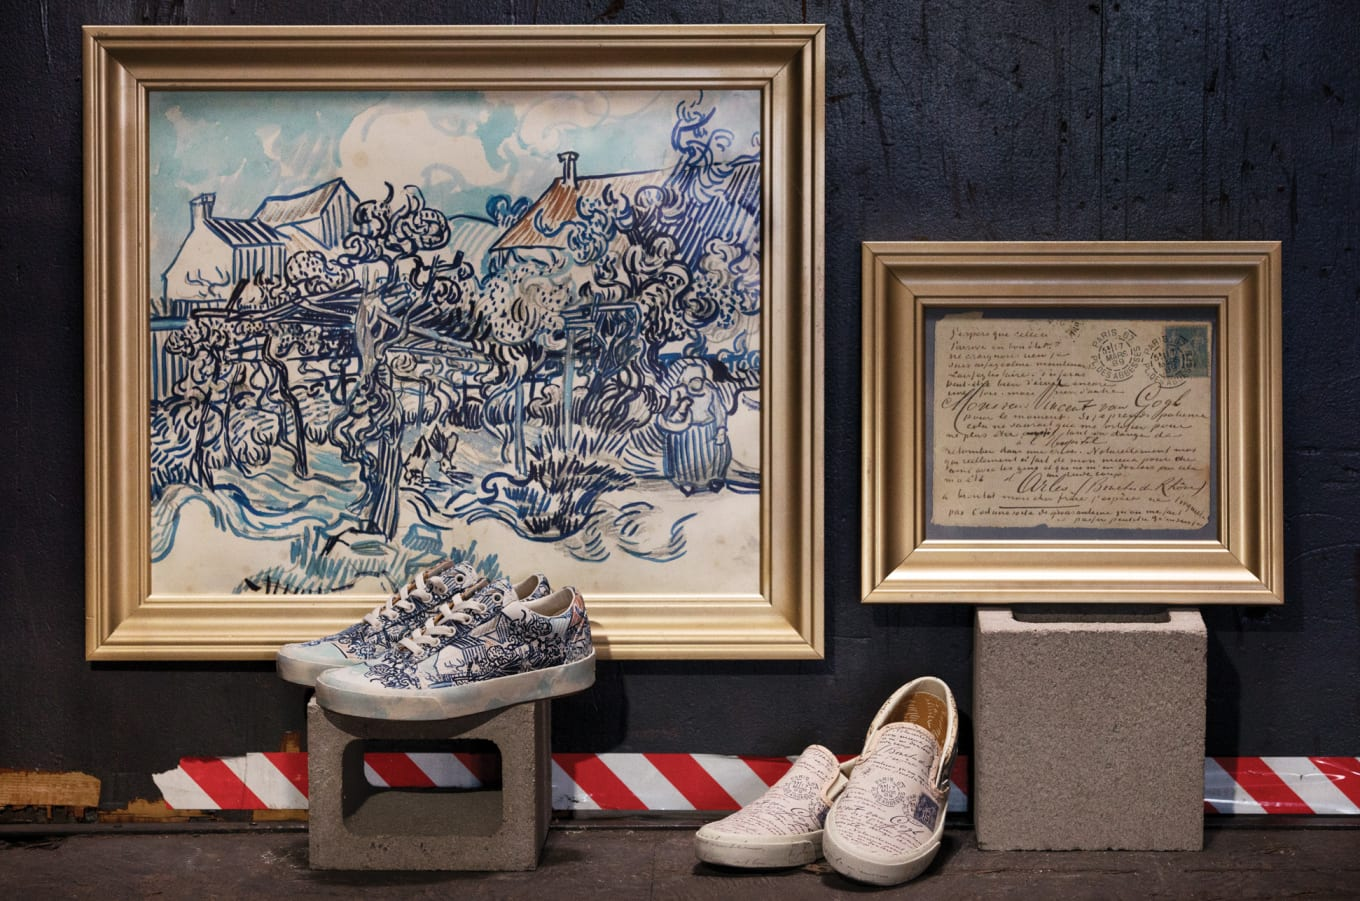 b9ef3d16d5 Van Gogh Museum x Vans Collection Release Date